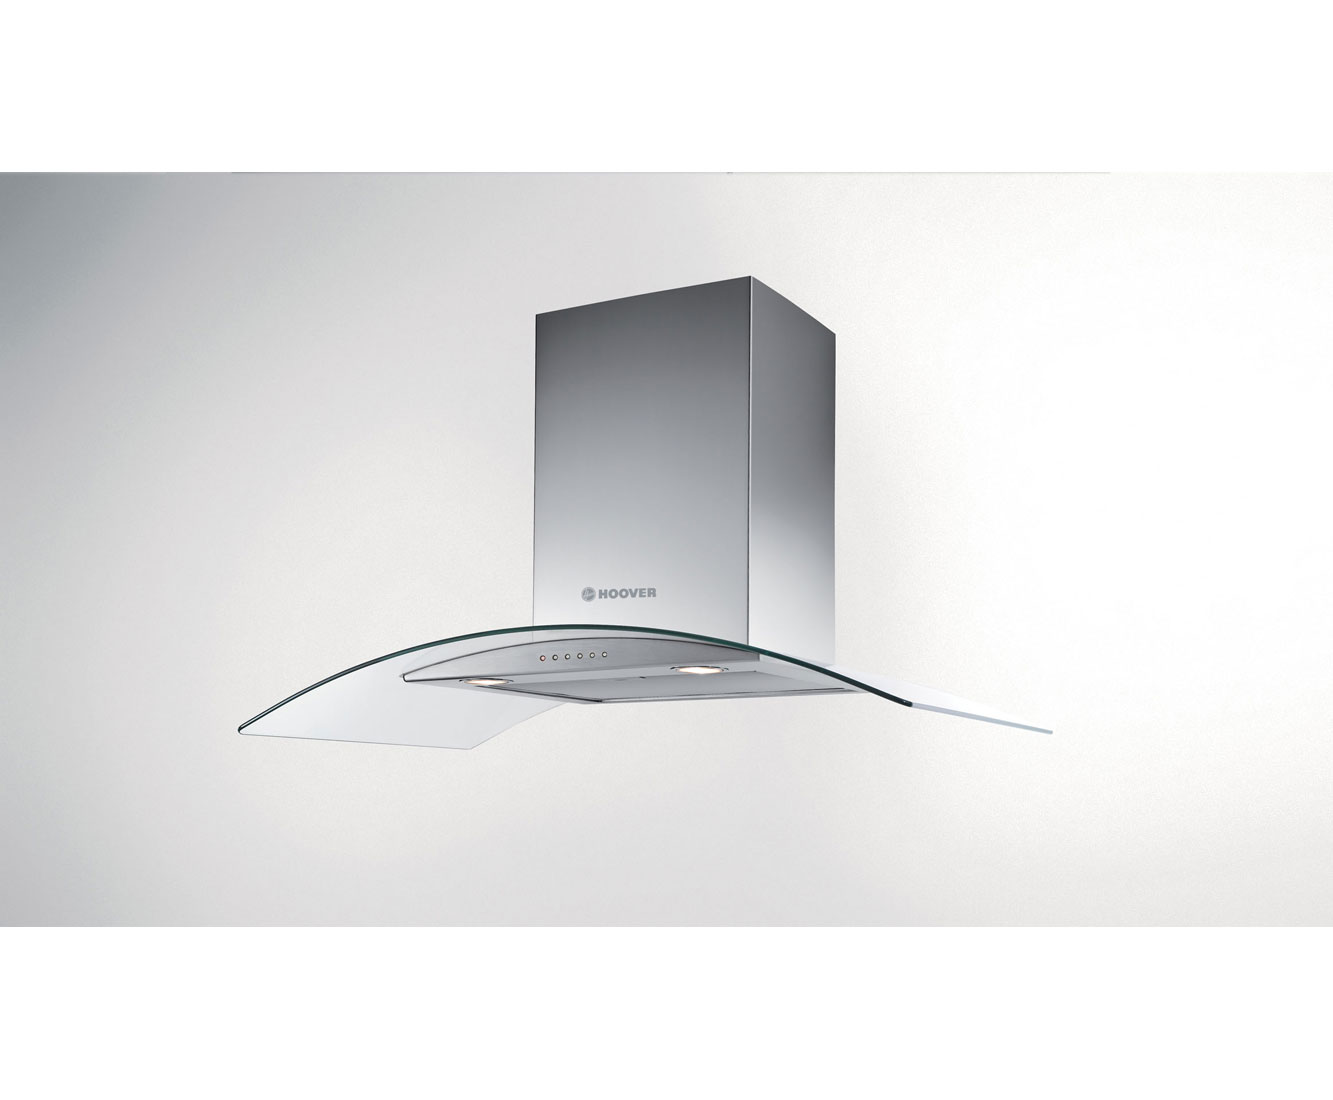 Hoover HGM91X Integrated Cooker Hood in Stainless Steel